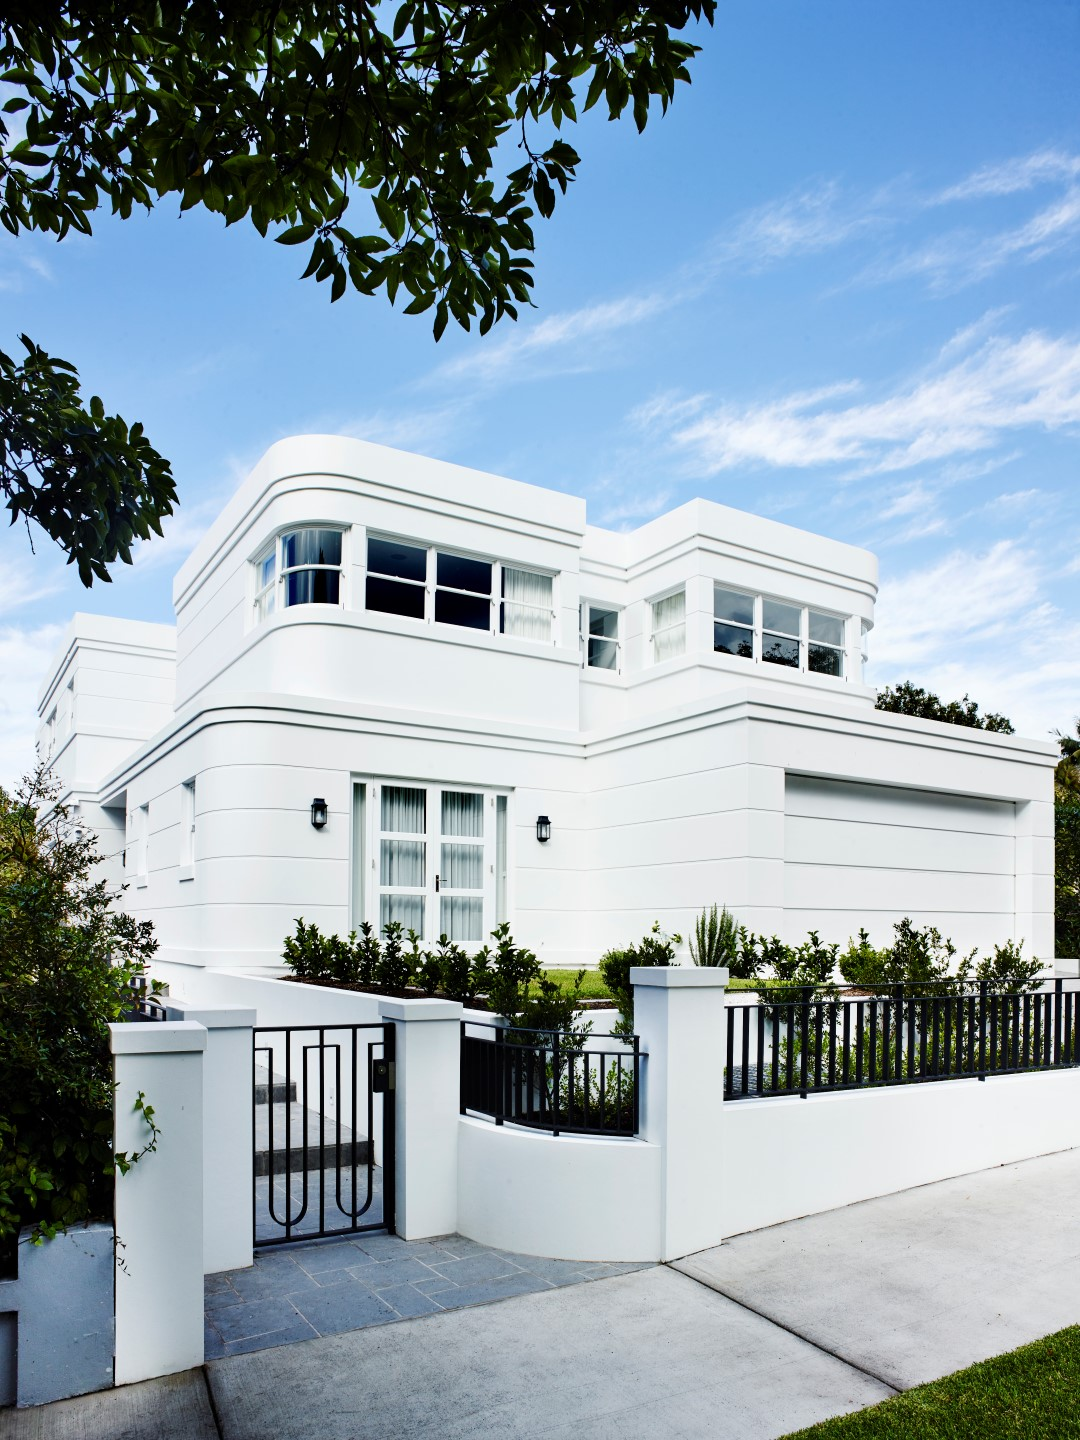 Art Deco Homes Luxury Forever Home Design In Sydneys Plush Rose Bay Area